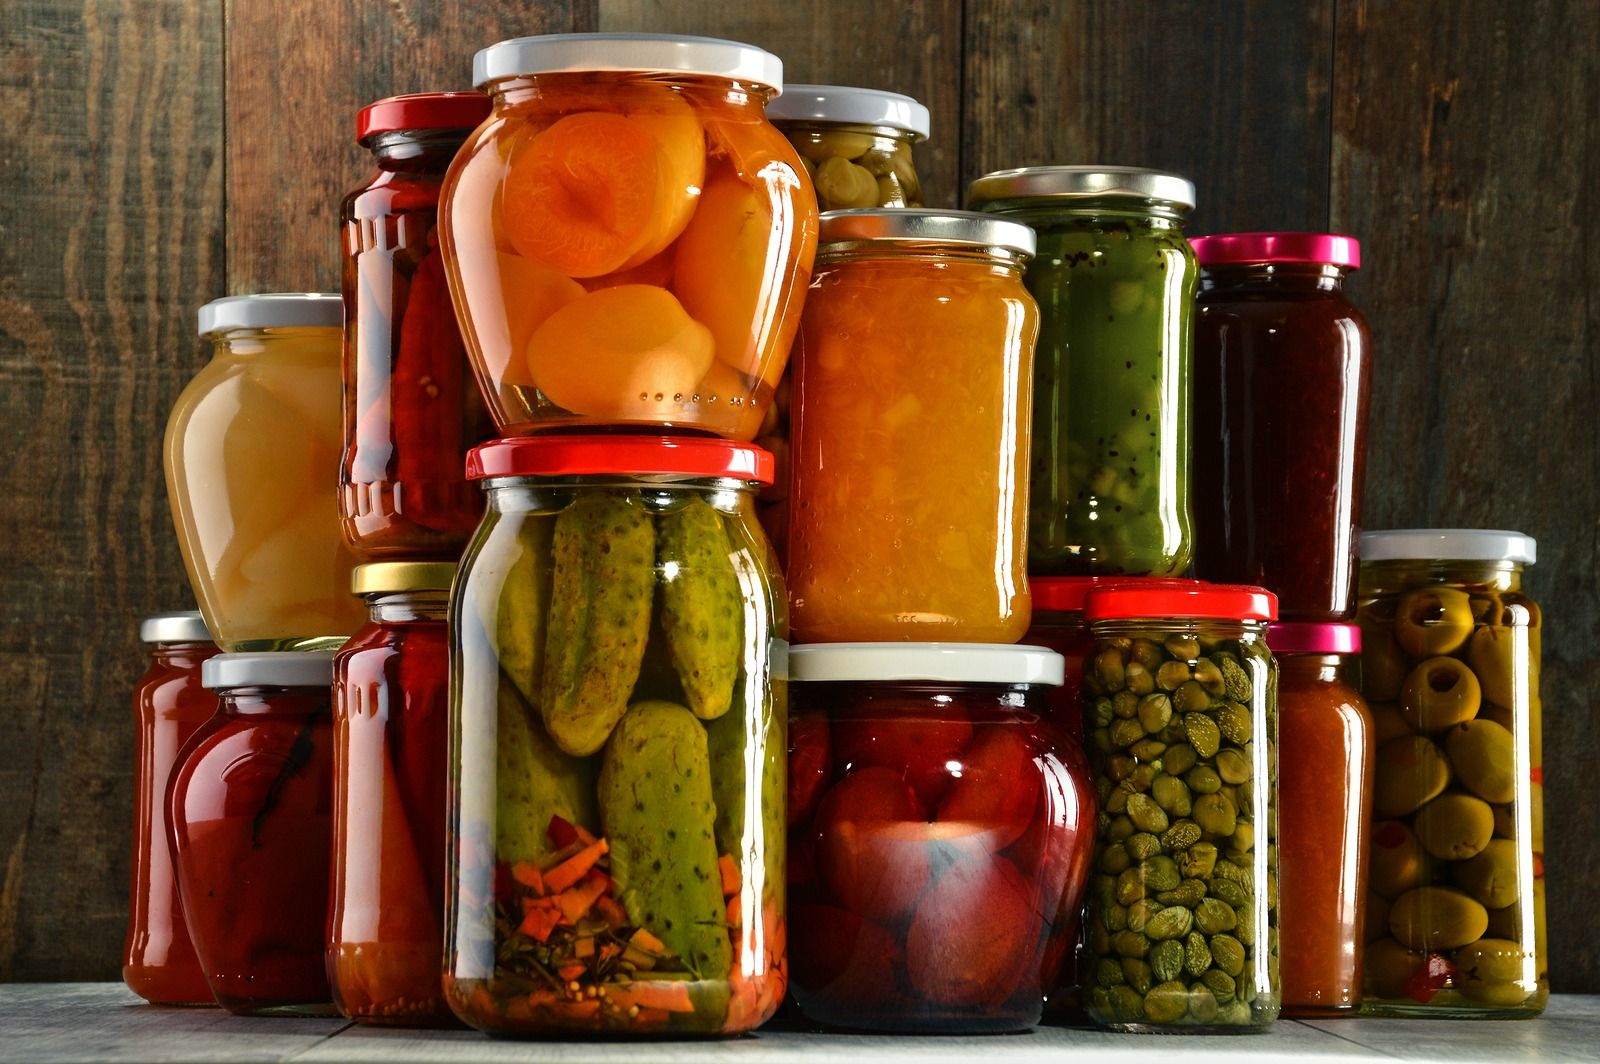 18 Foods You Should Stop Throwing Away